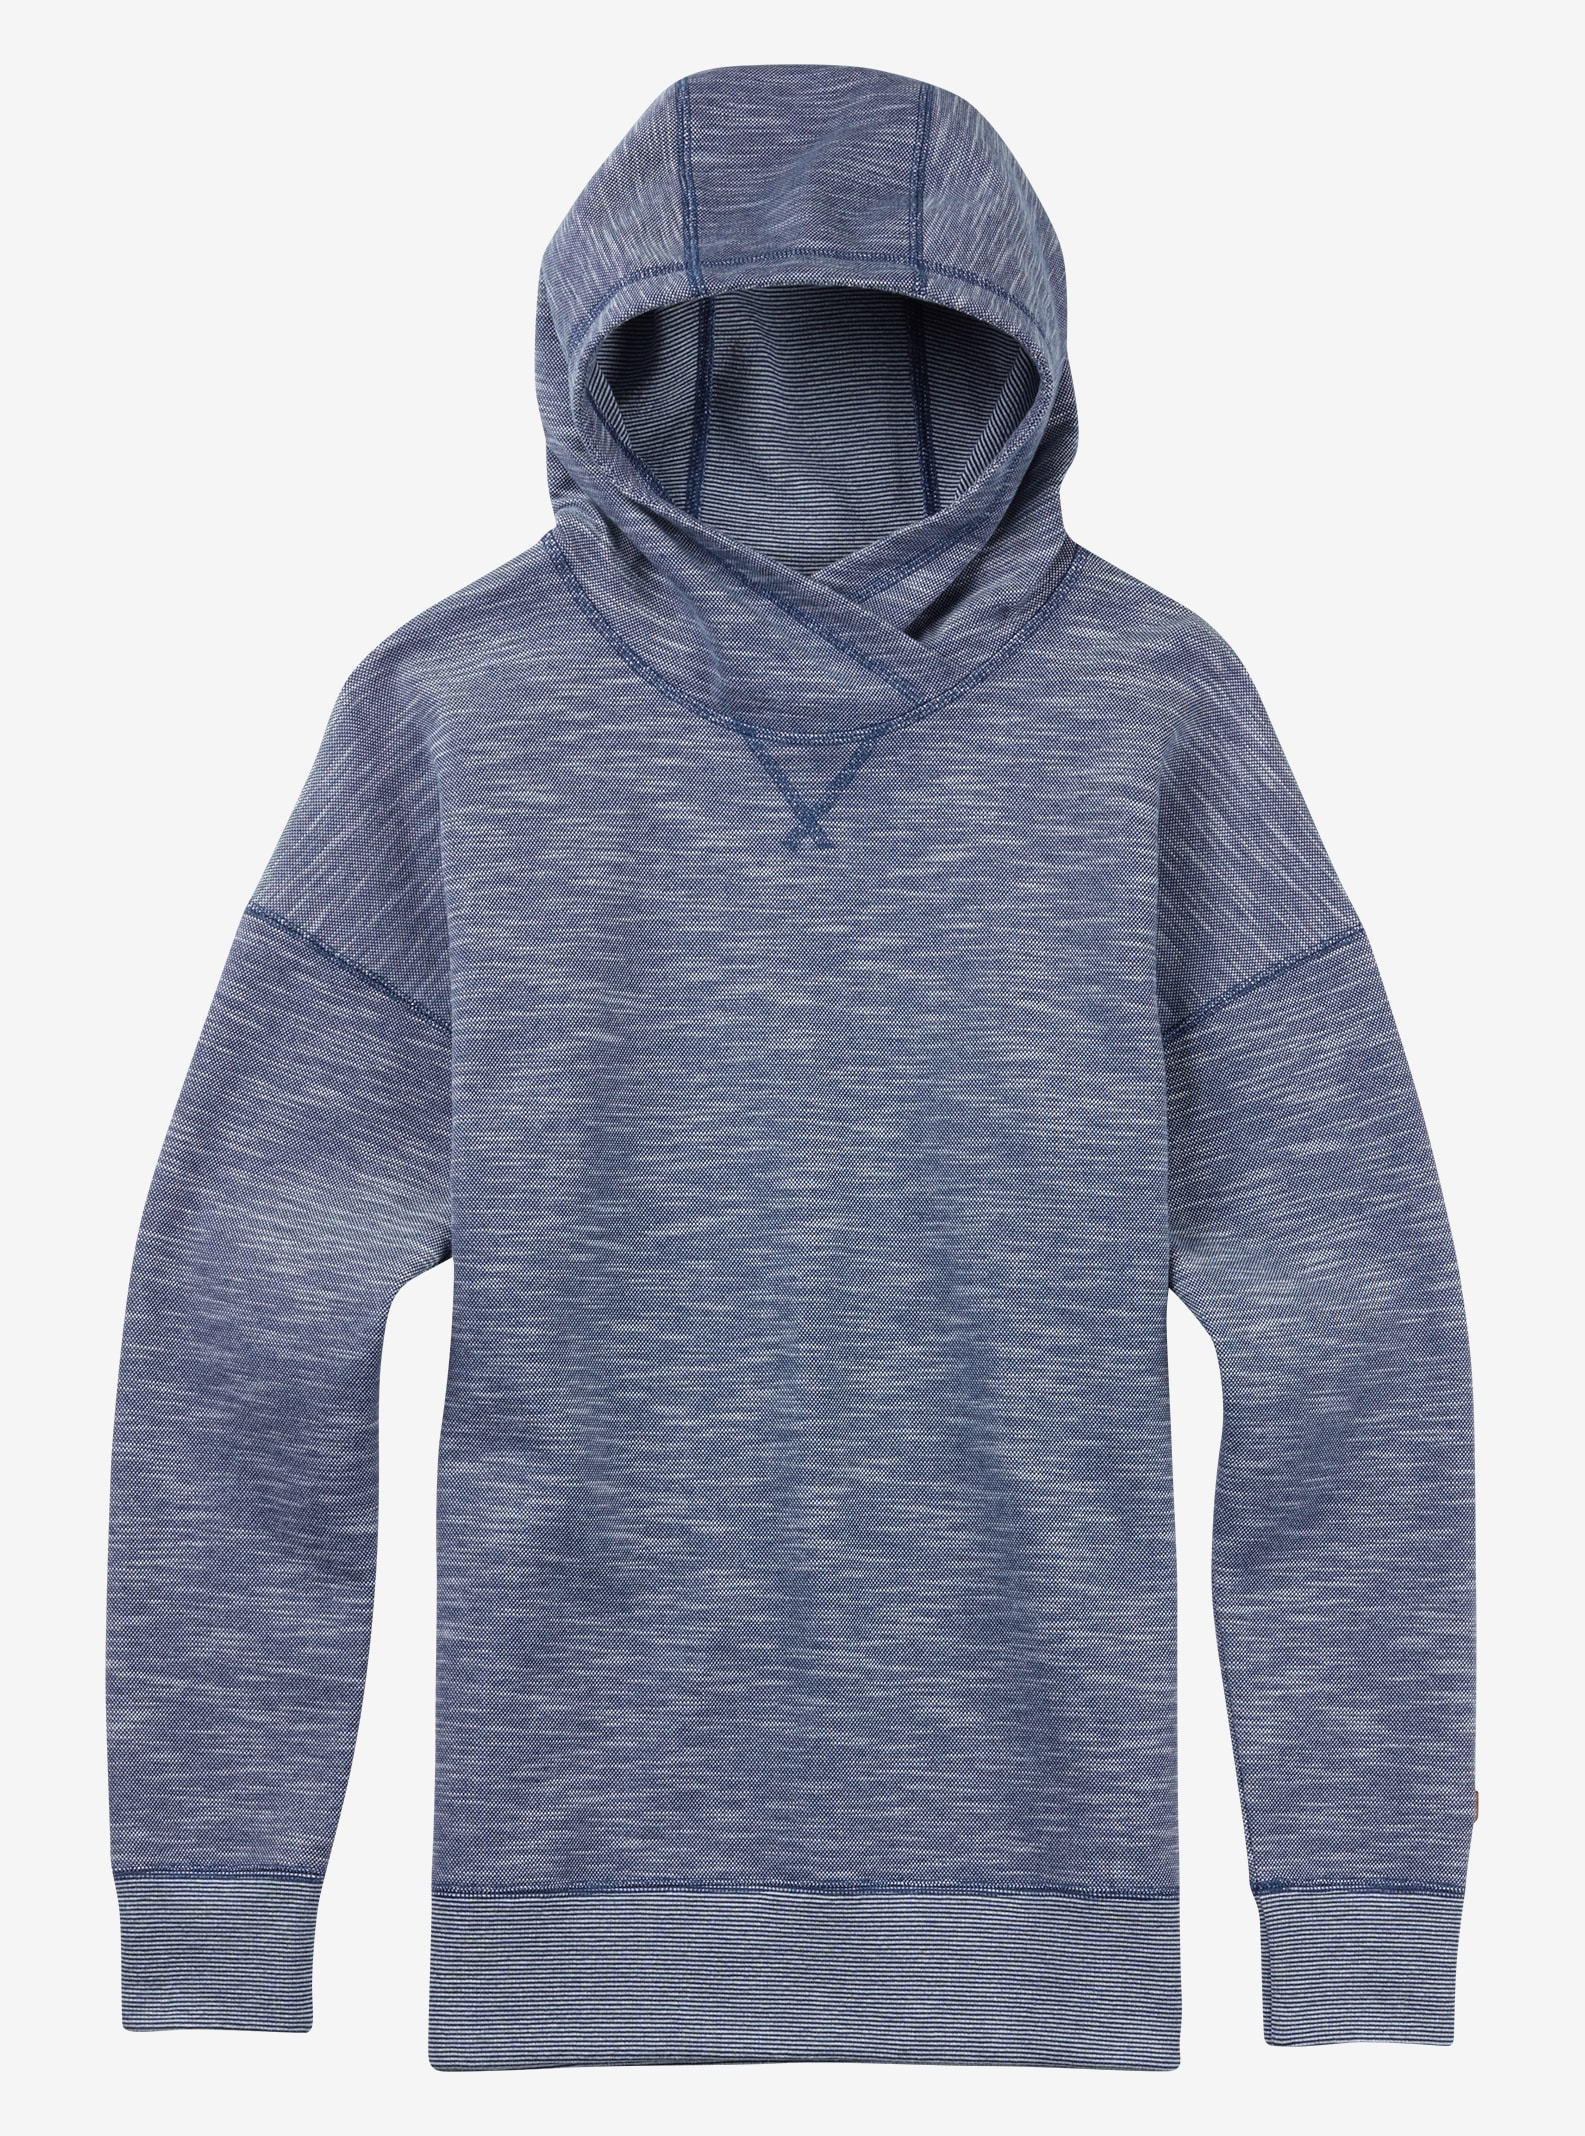 Burton Hixon Pullover angezeigt in True Blue Heather